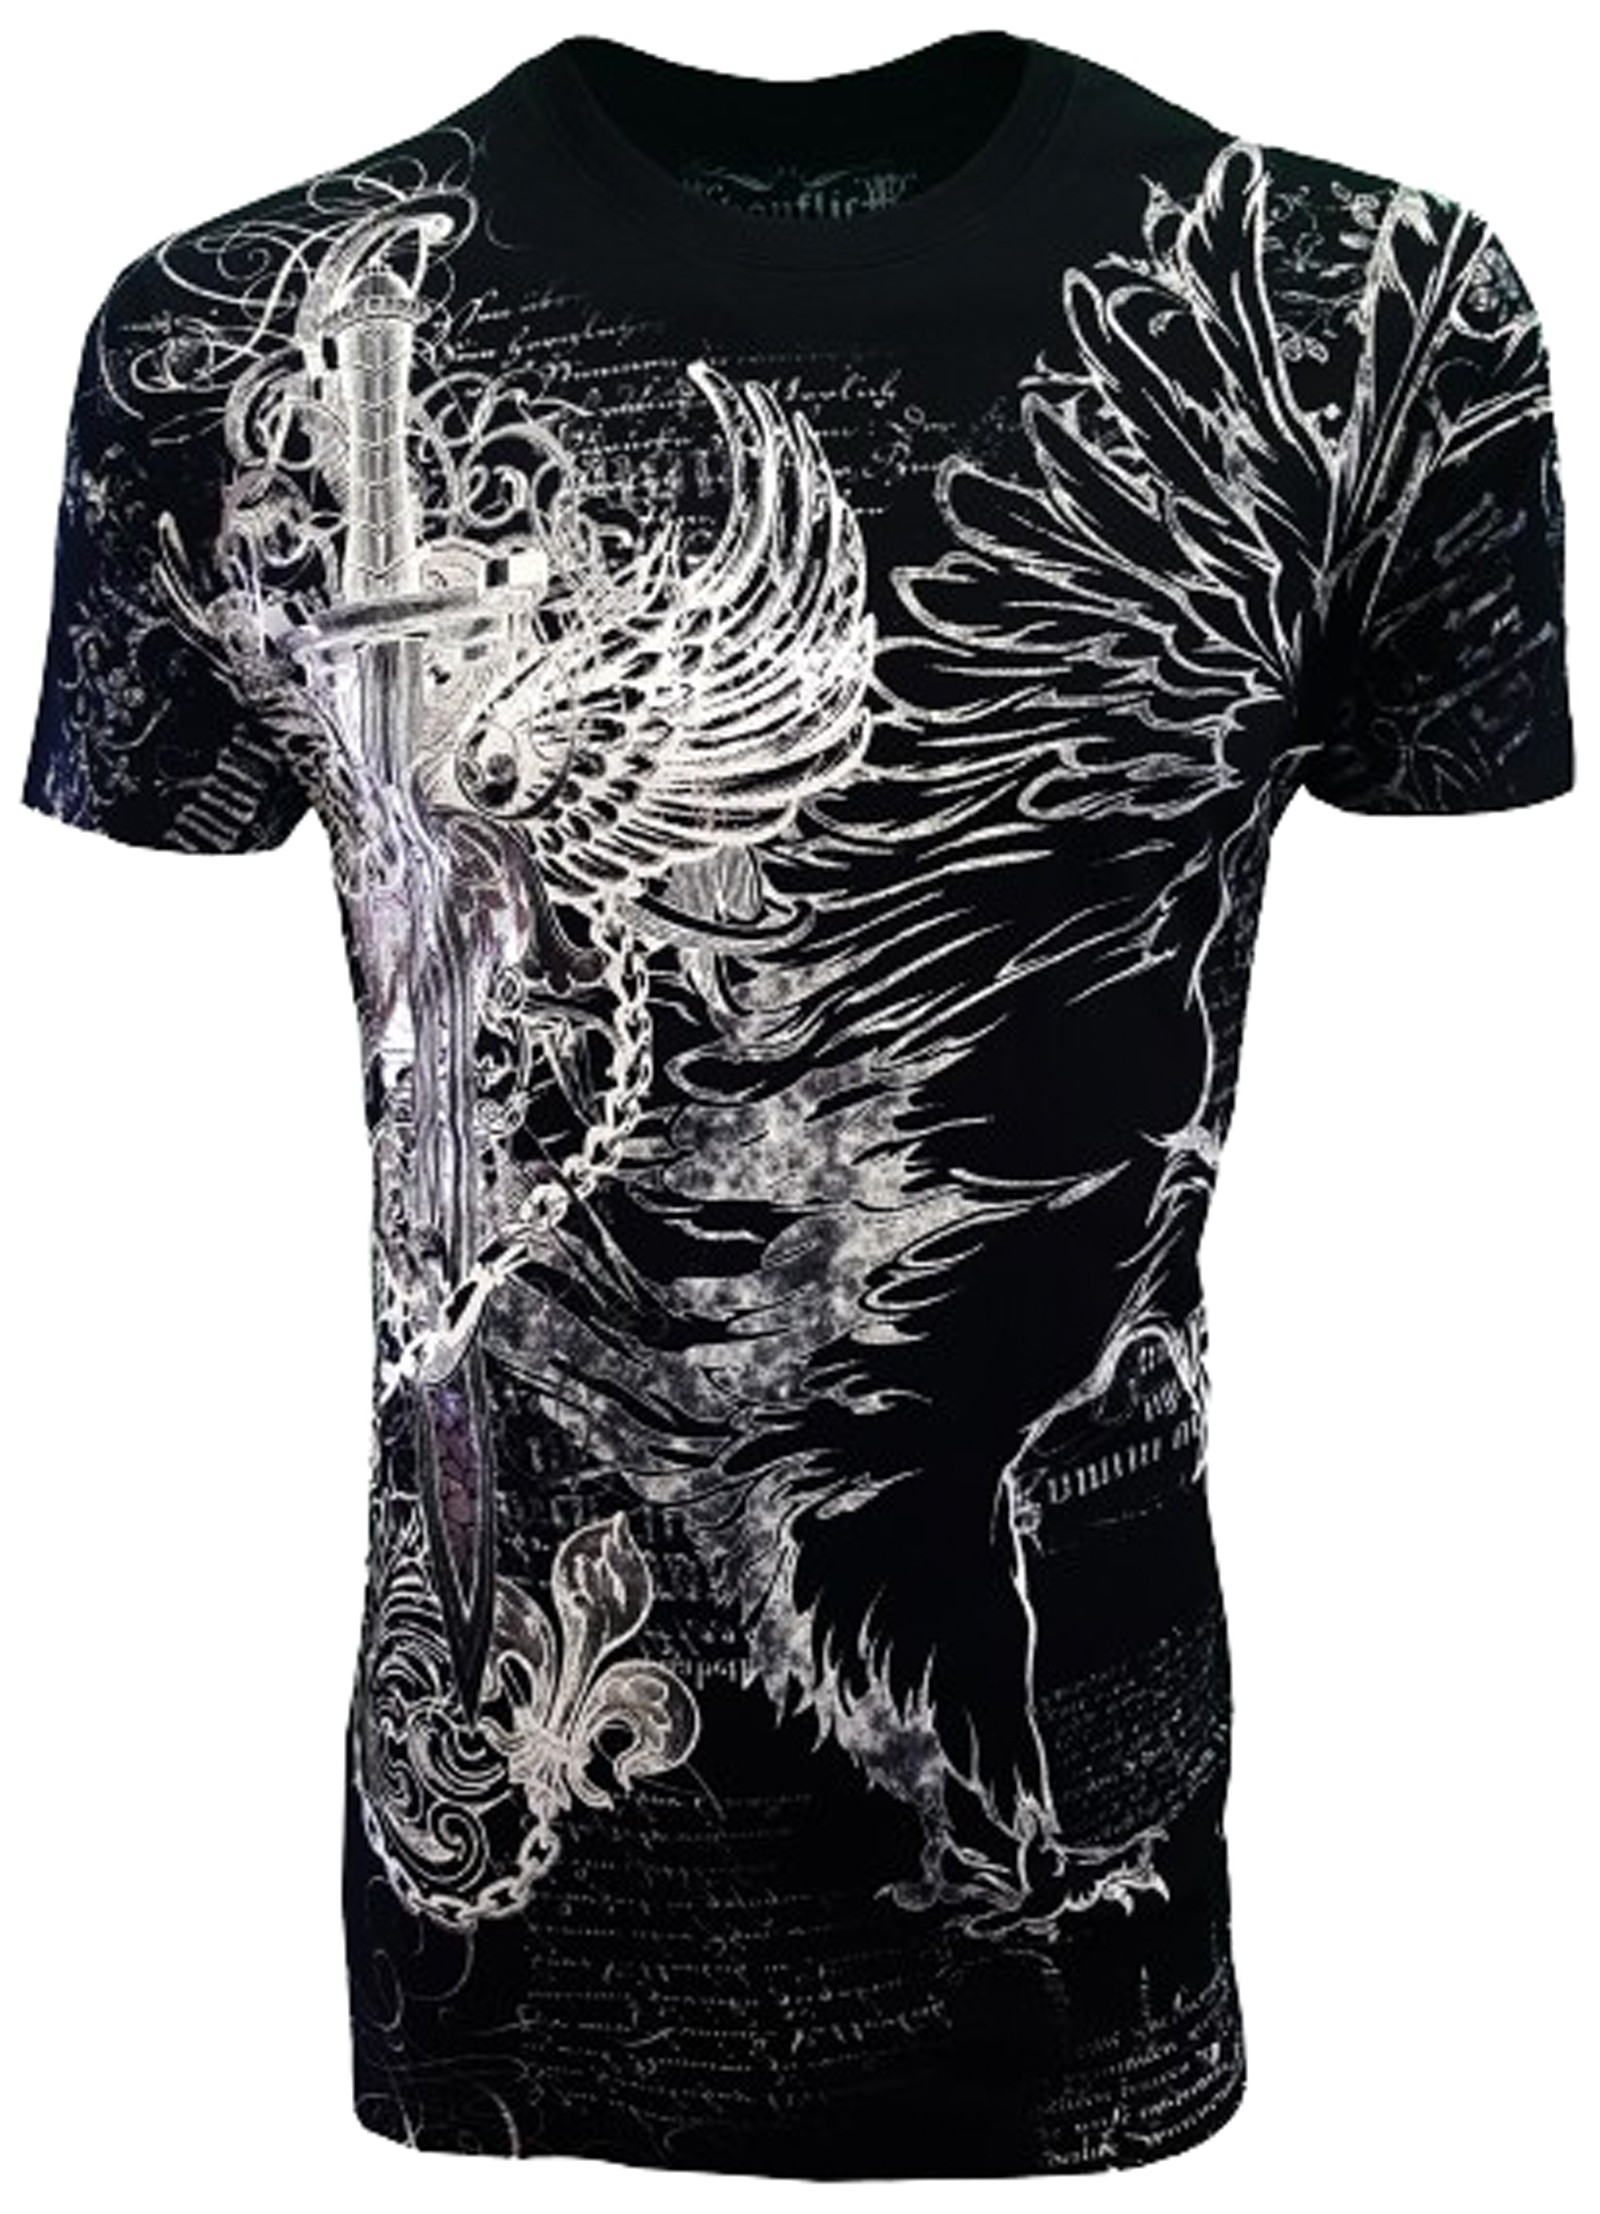 Konflic Clothing - Live and Die by the Sword T-Shirt